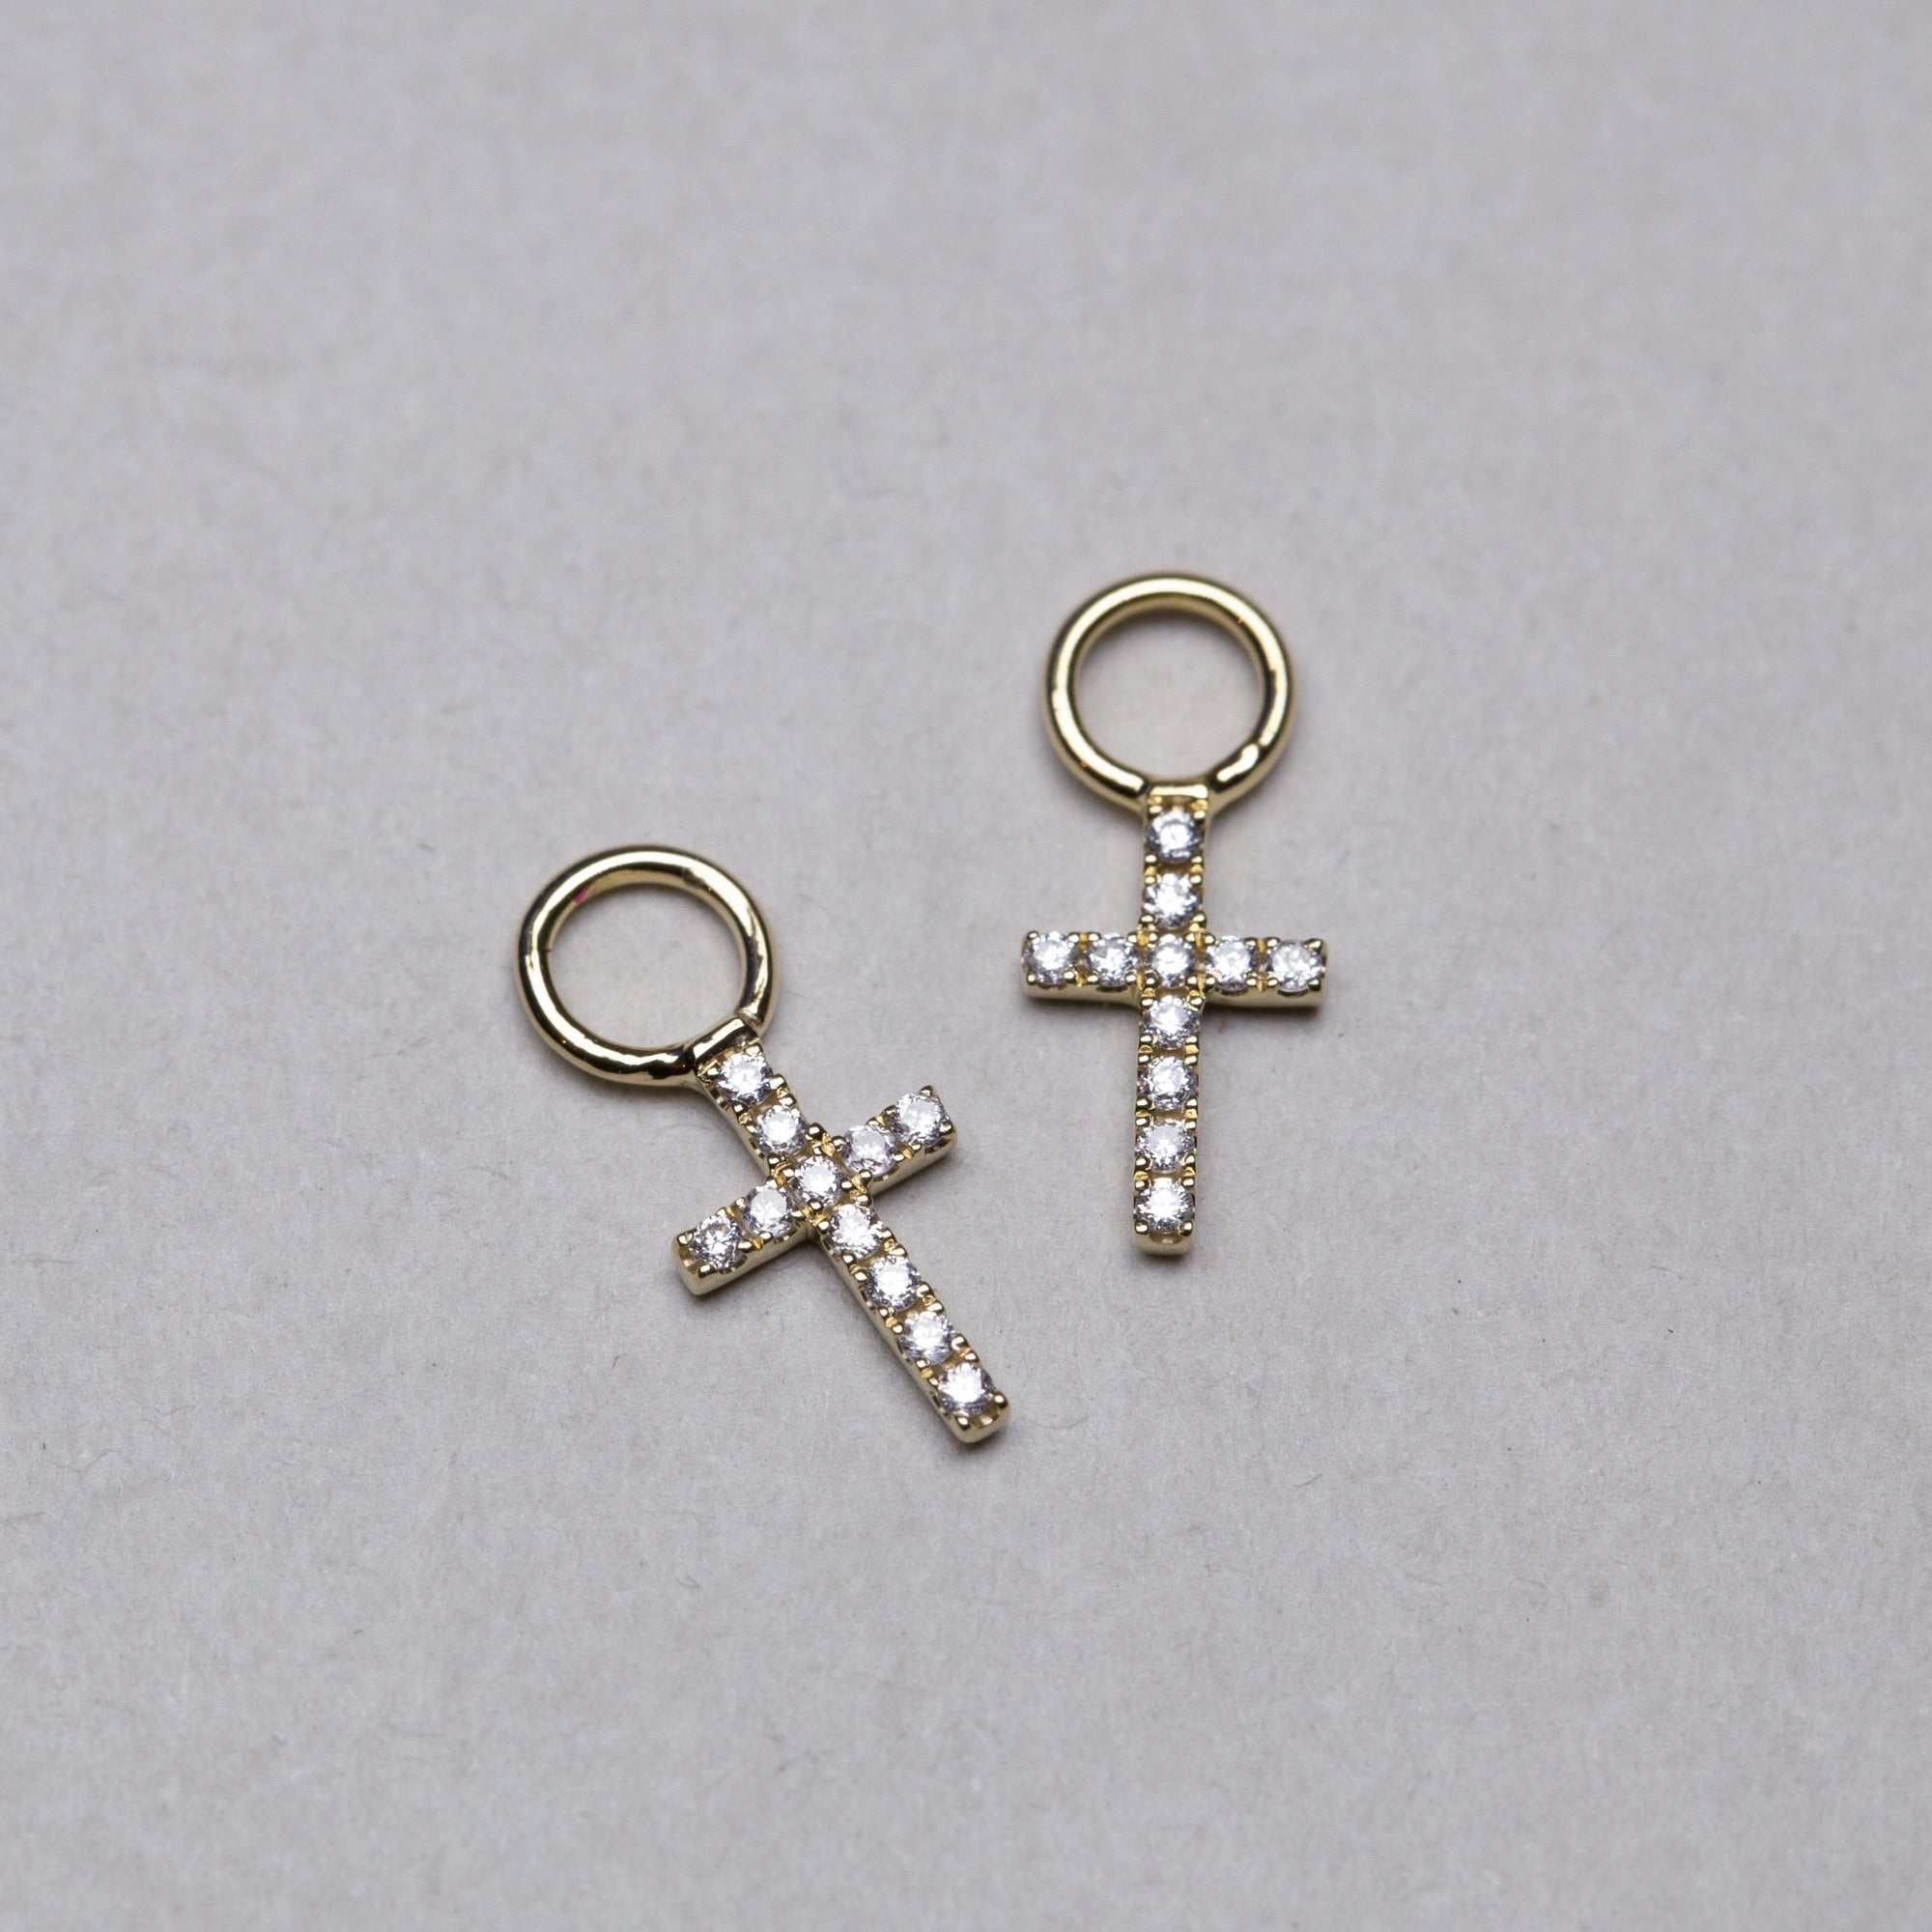 Diamond Cross Earring Charms